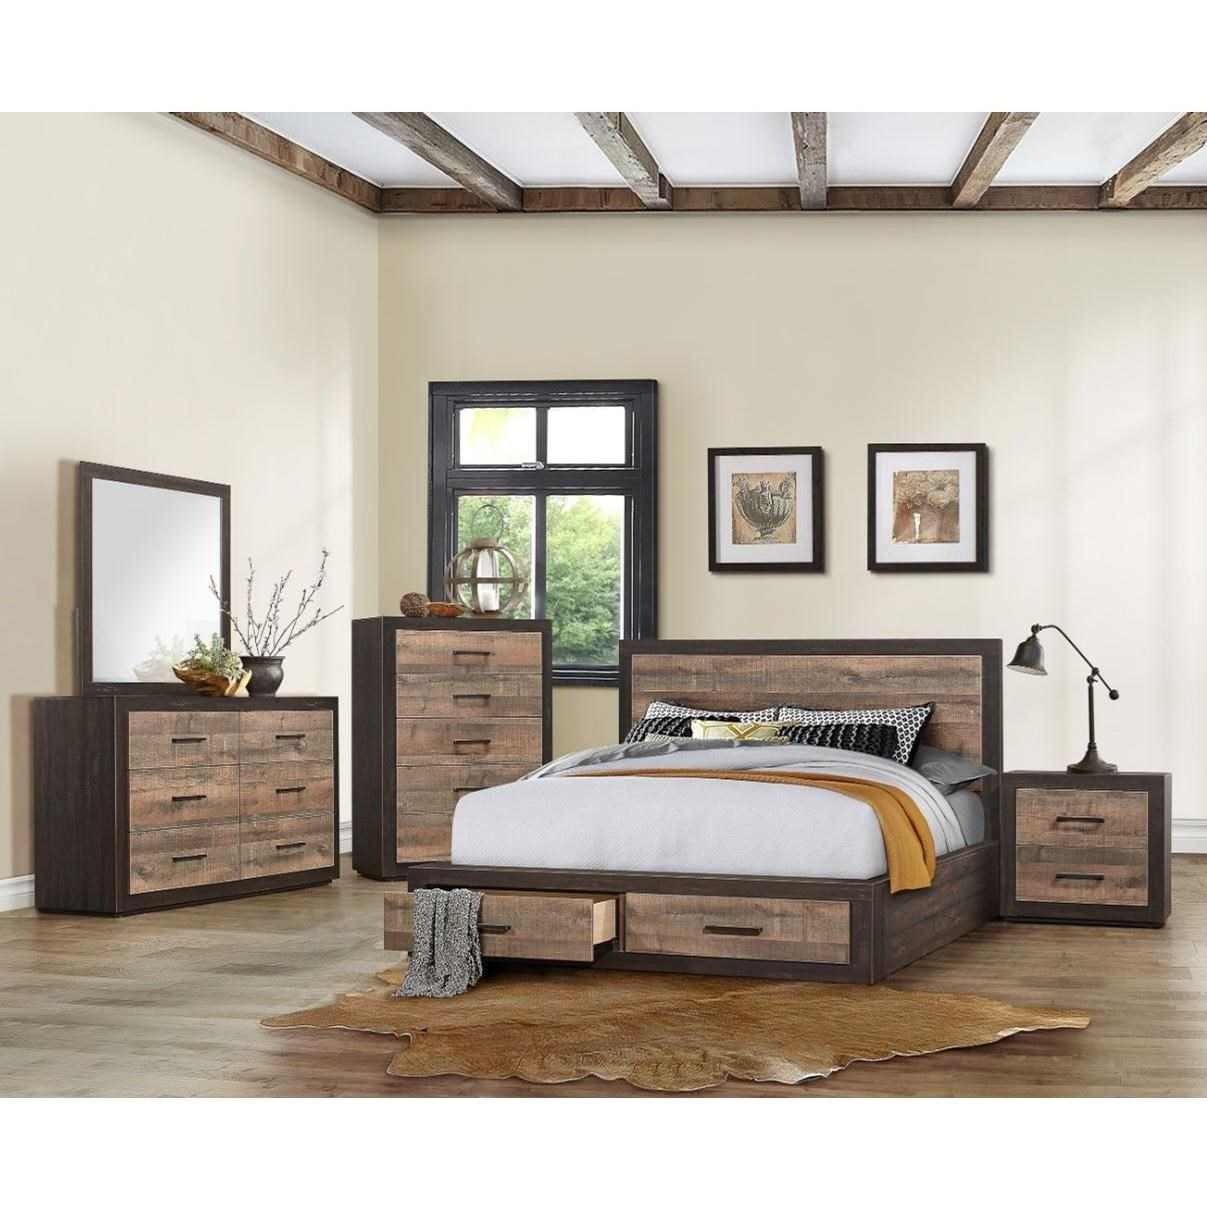 Miter Queen Bedroom Group by Homelegance at Beck's Furniture